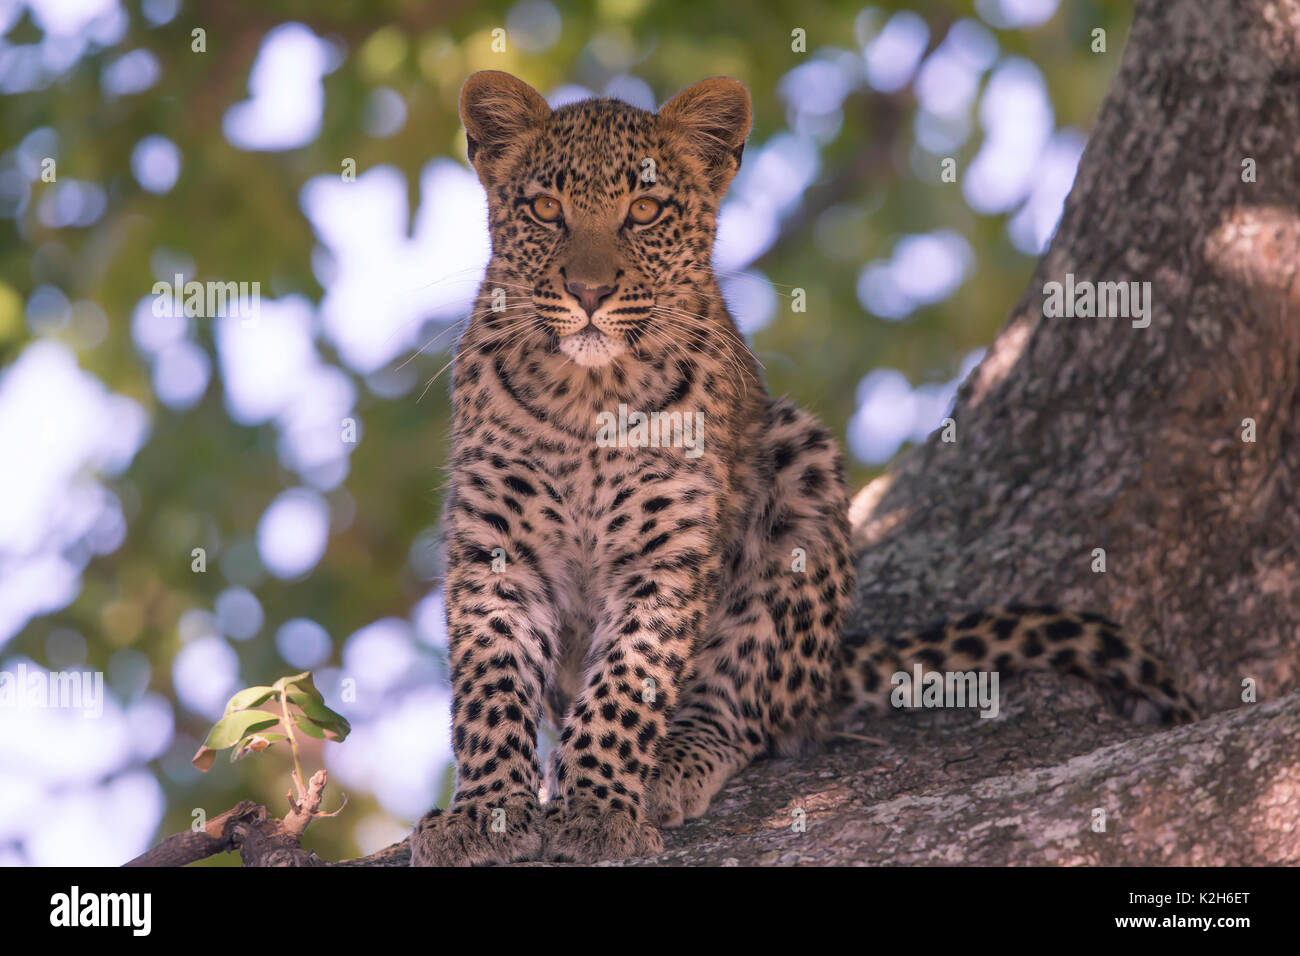 Leopard (Panthera pardus), seven month old cub in at ree Stock Photo